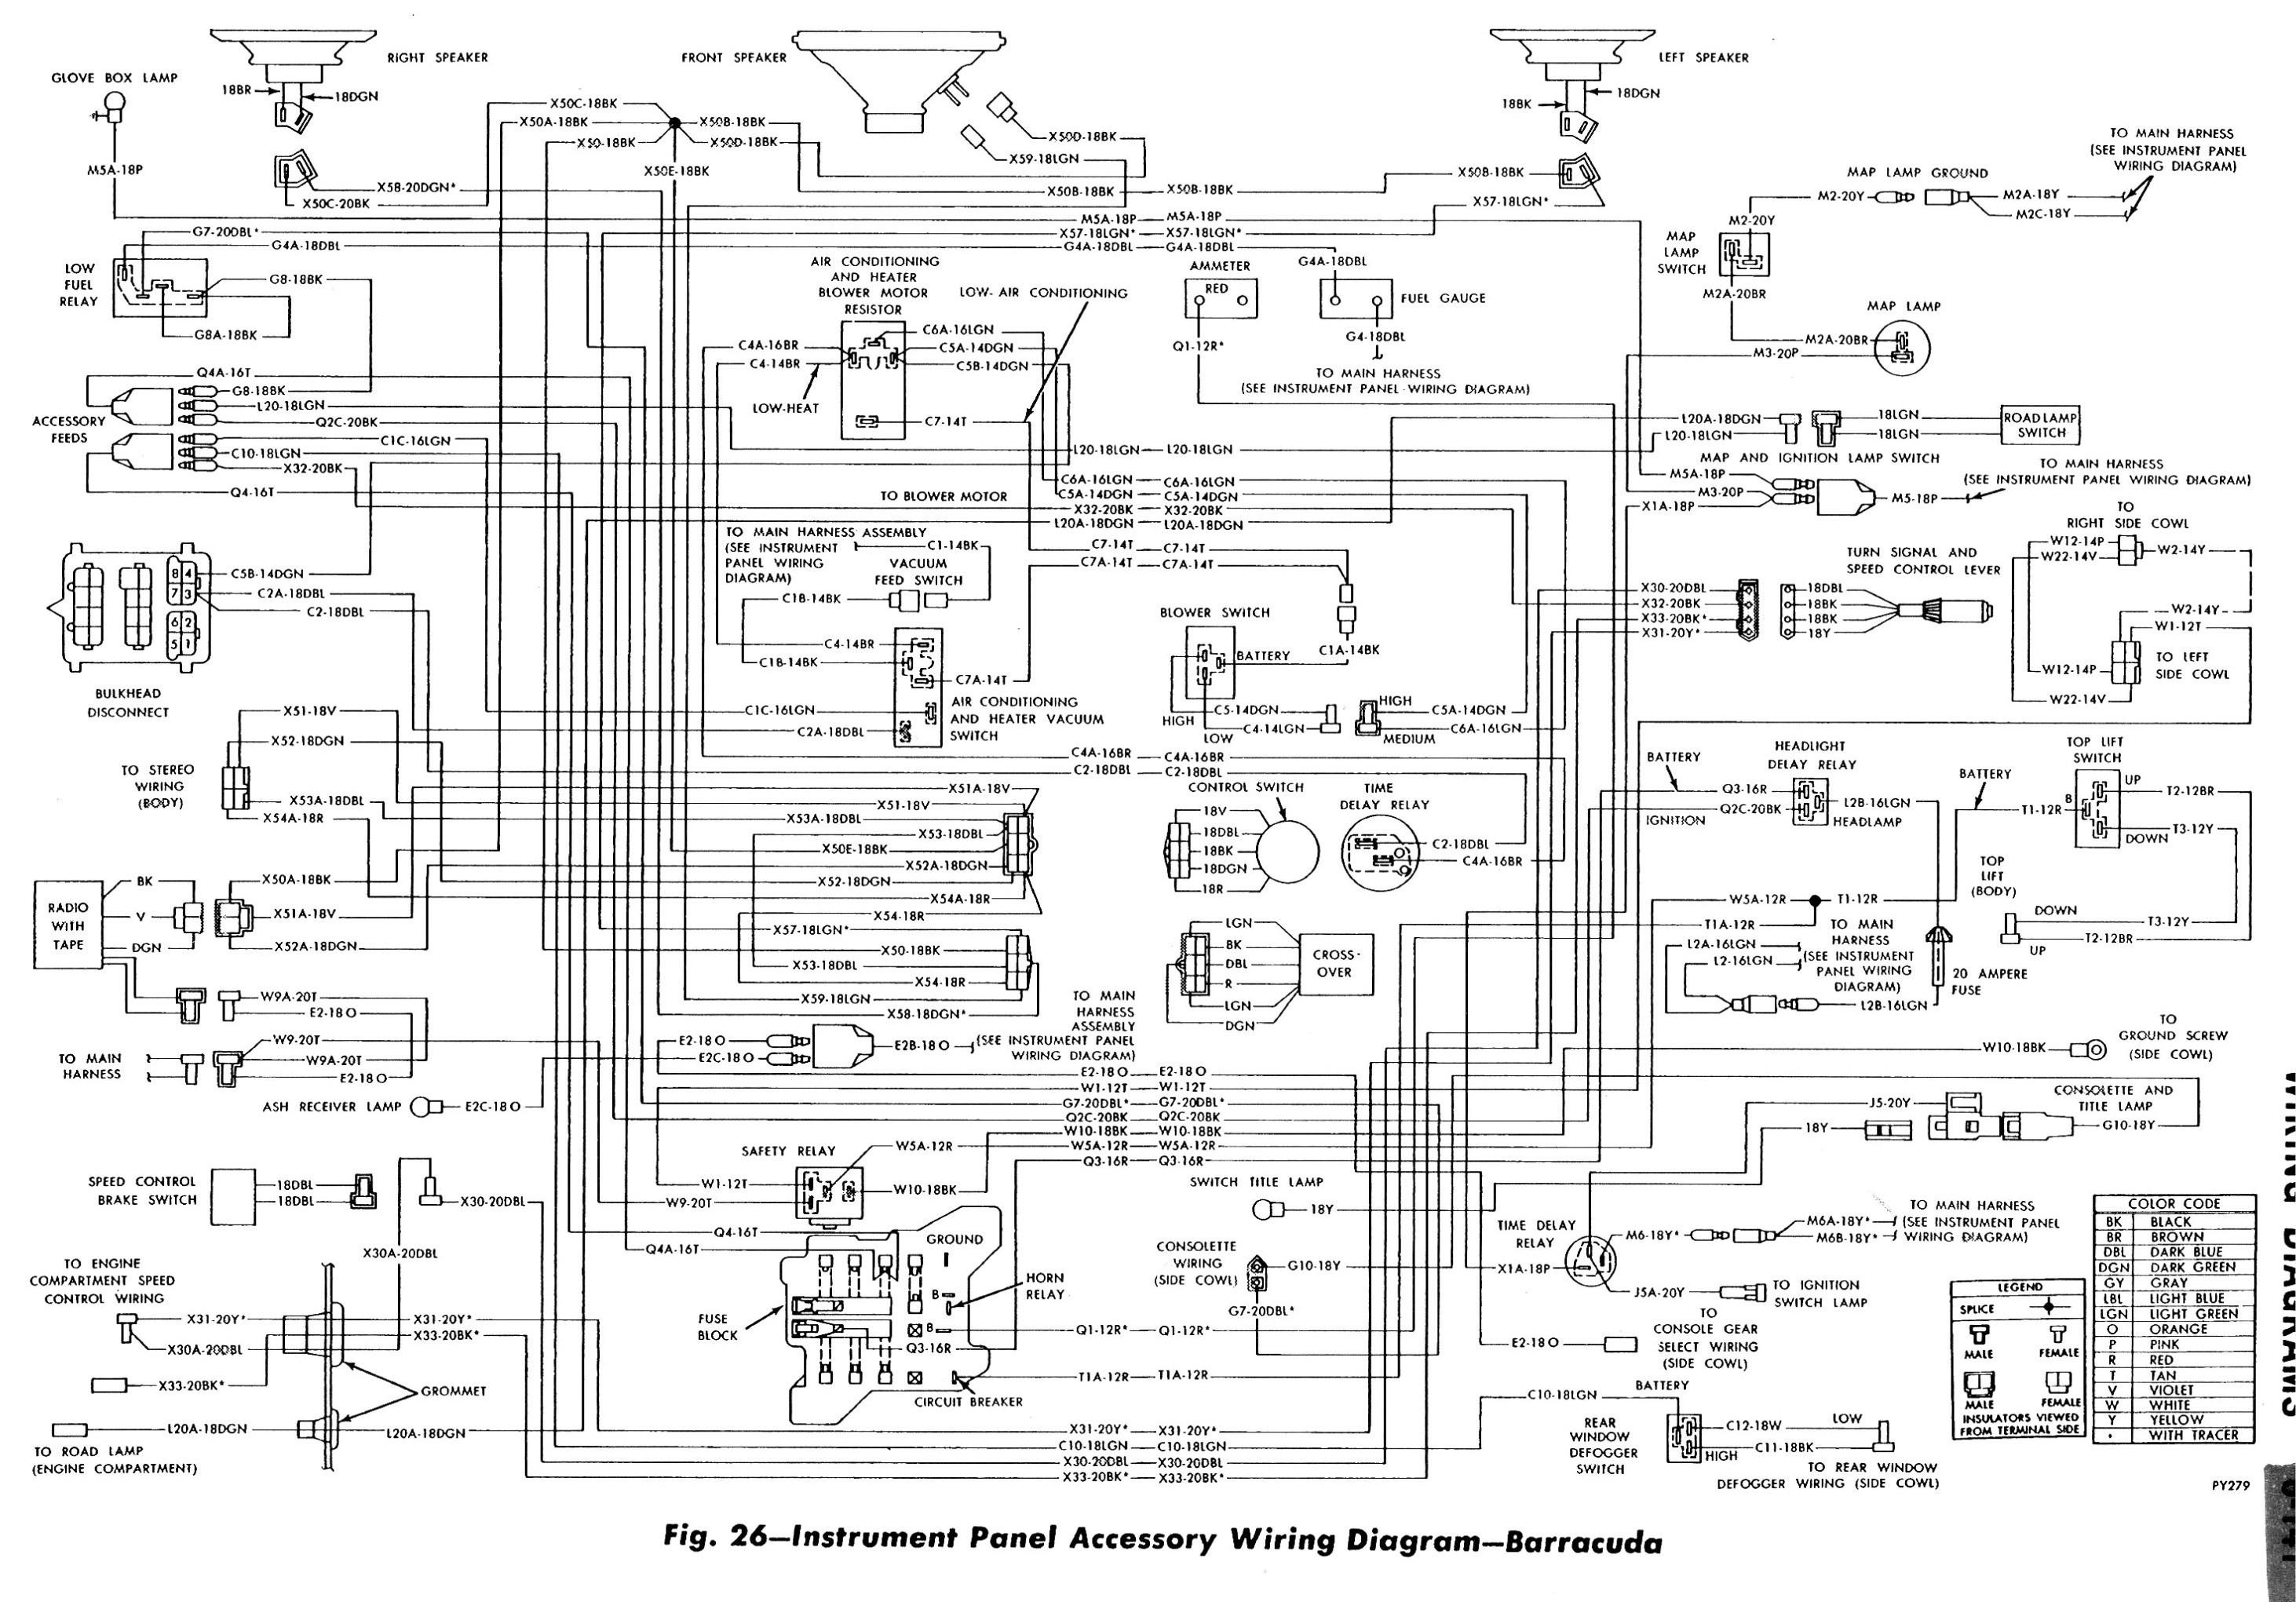 1970 Dodge Challenger Dash Wiring Diagram, 1970, Free